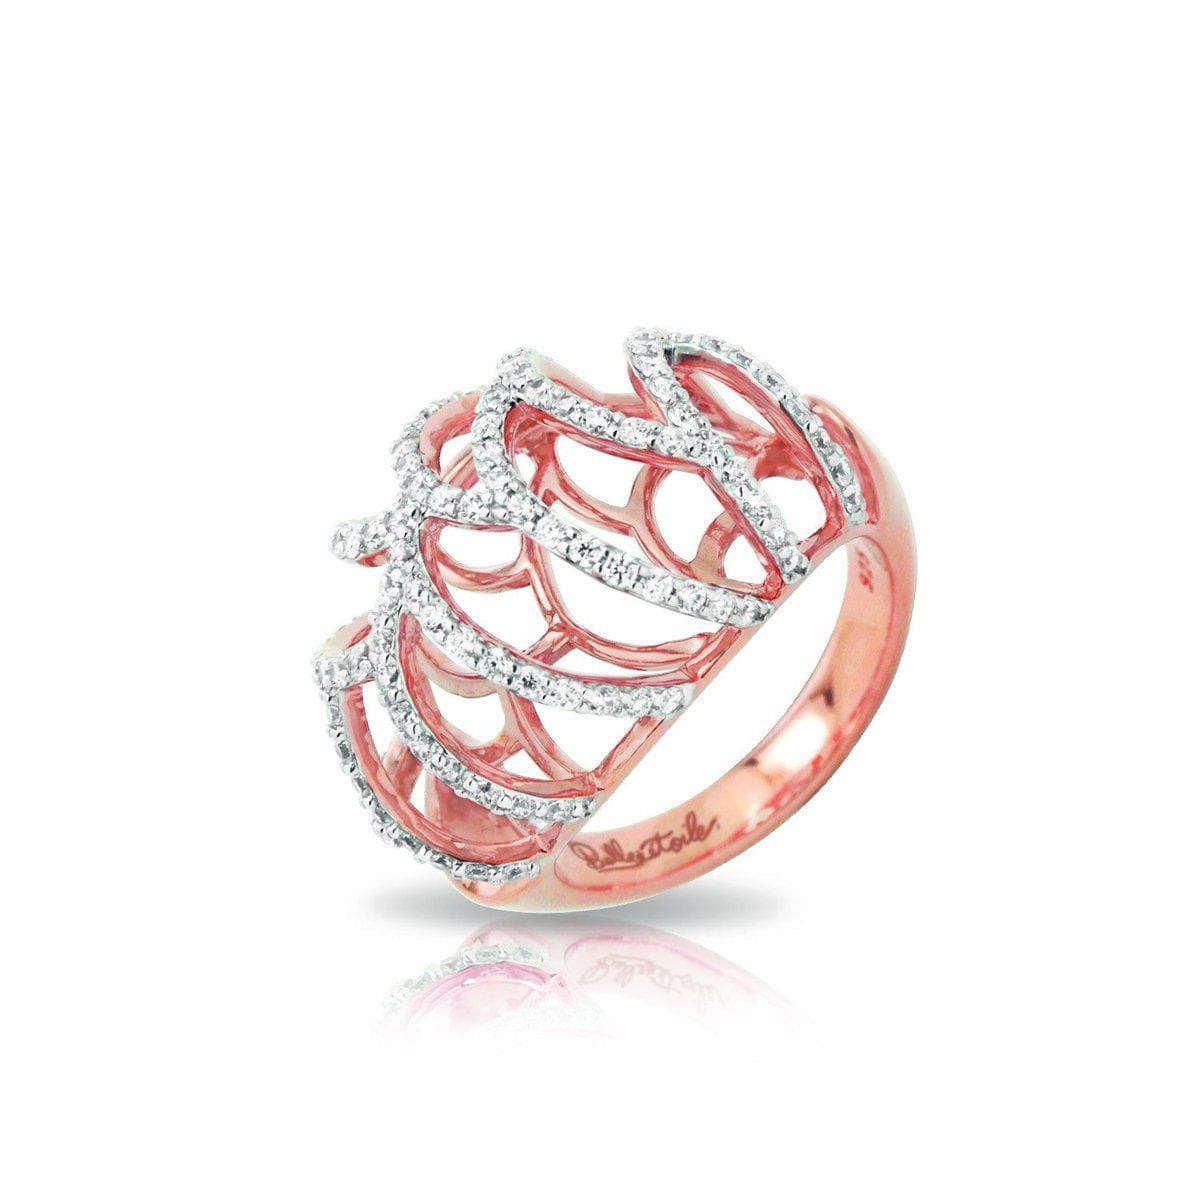 Monaco Rose Ring-Belle Etoile-Renee Taylor Gallery